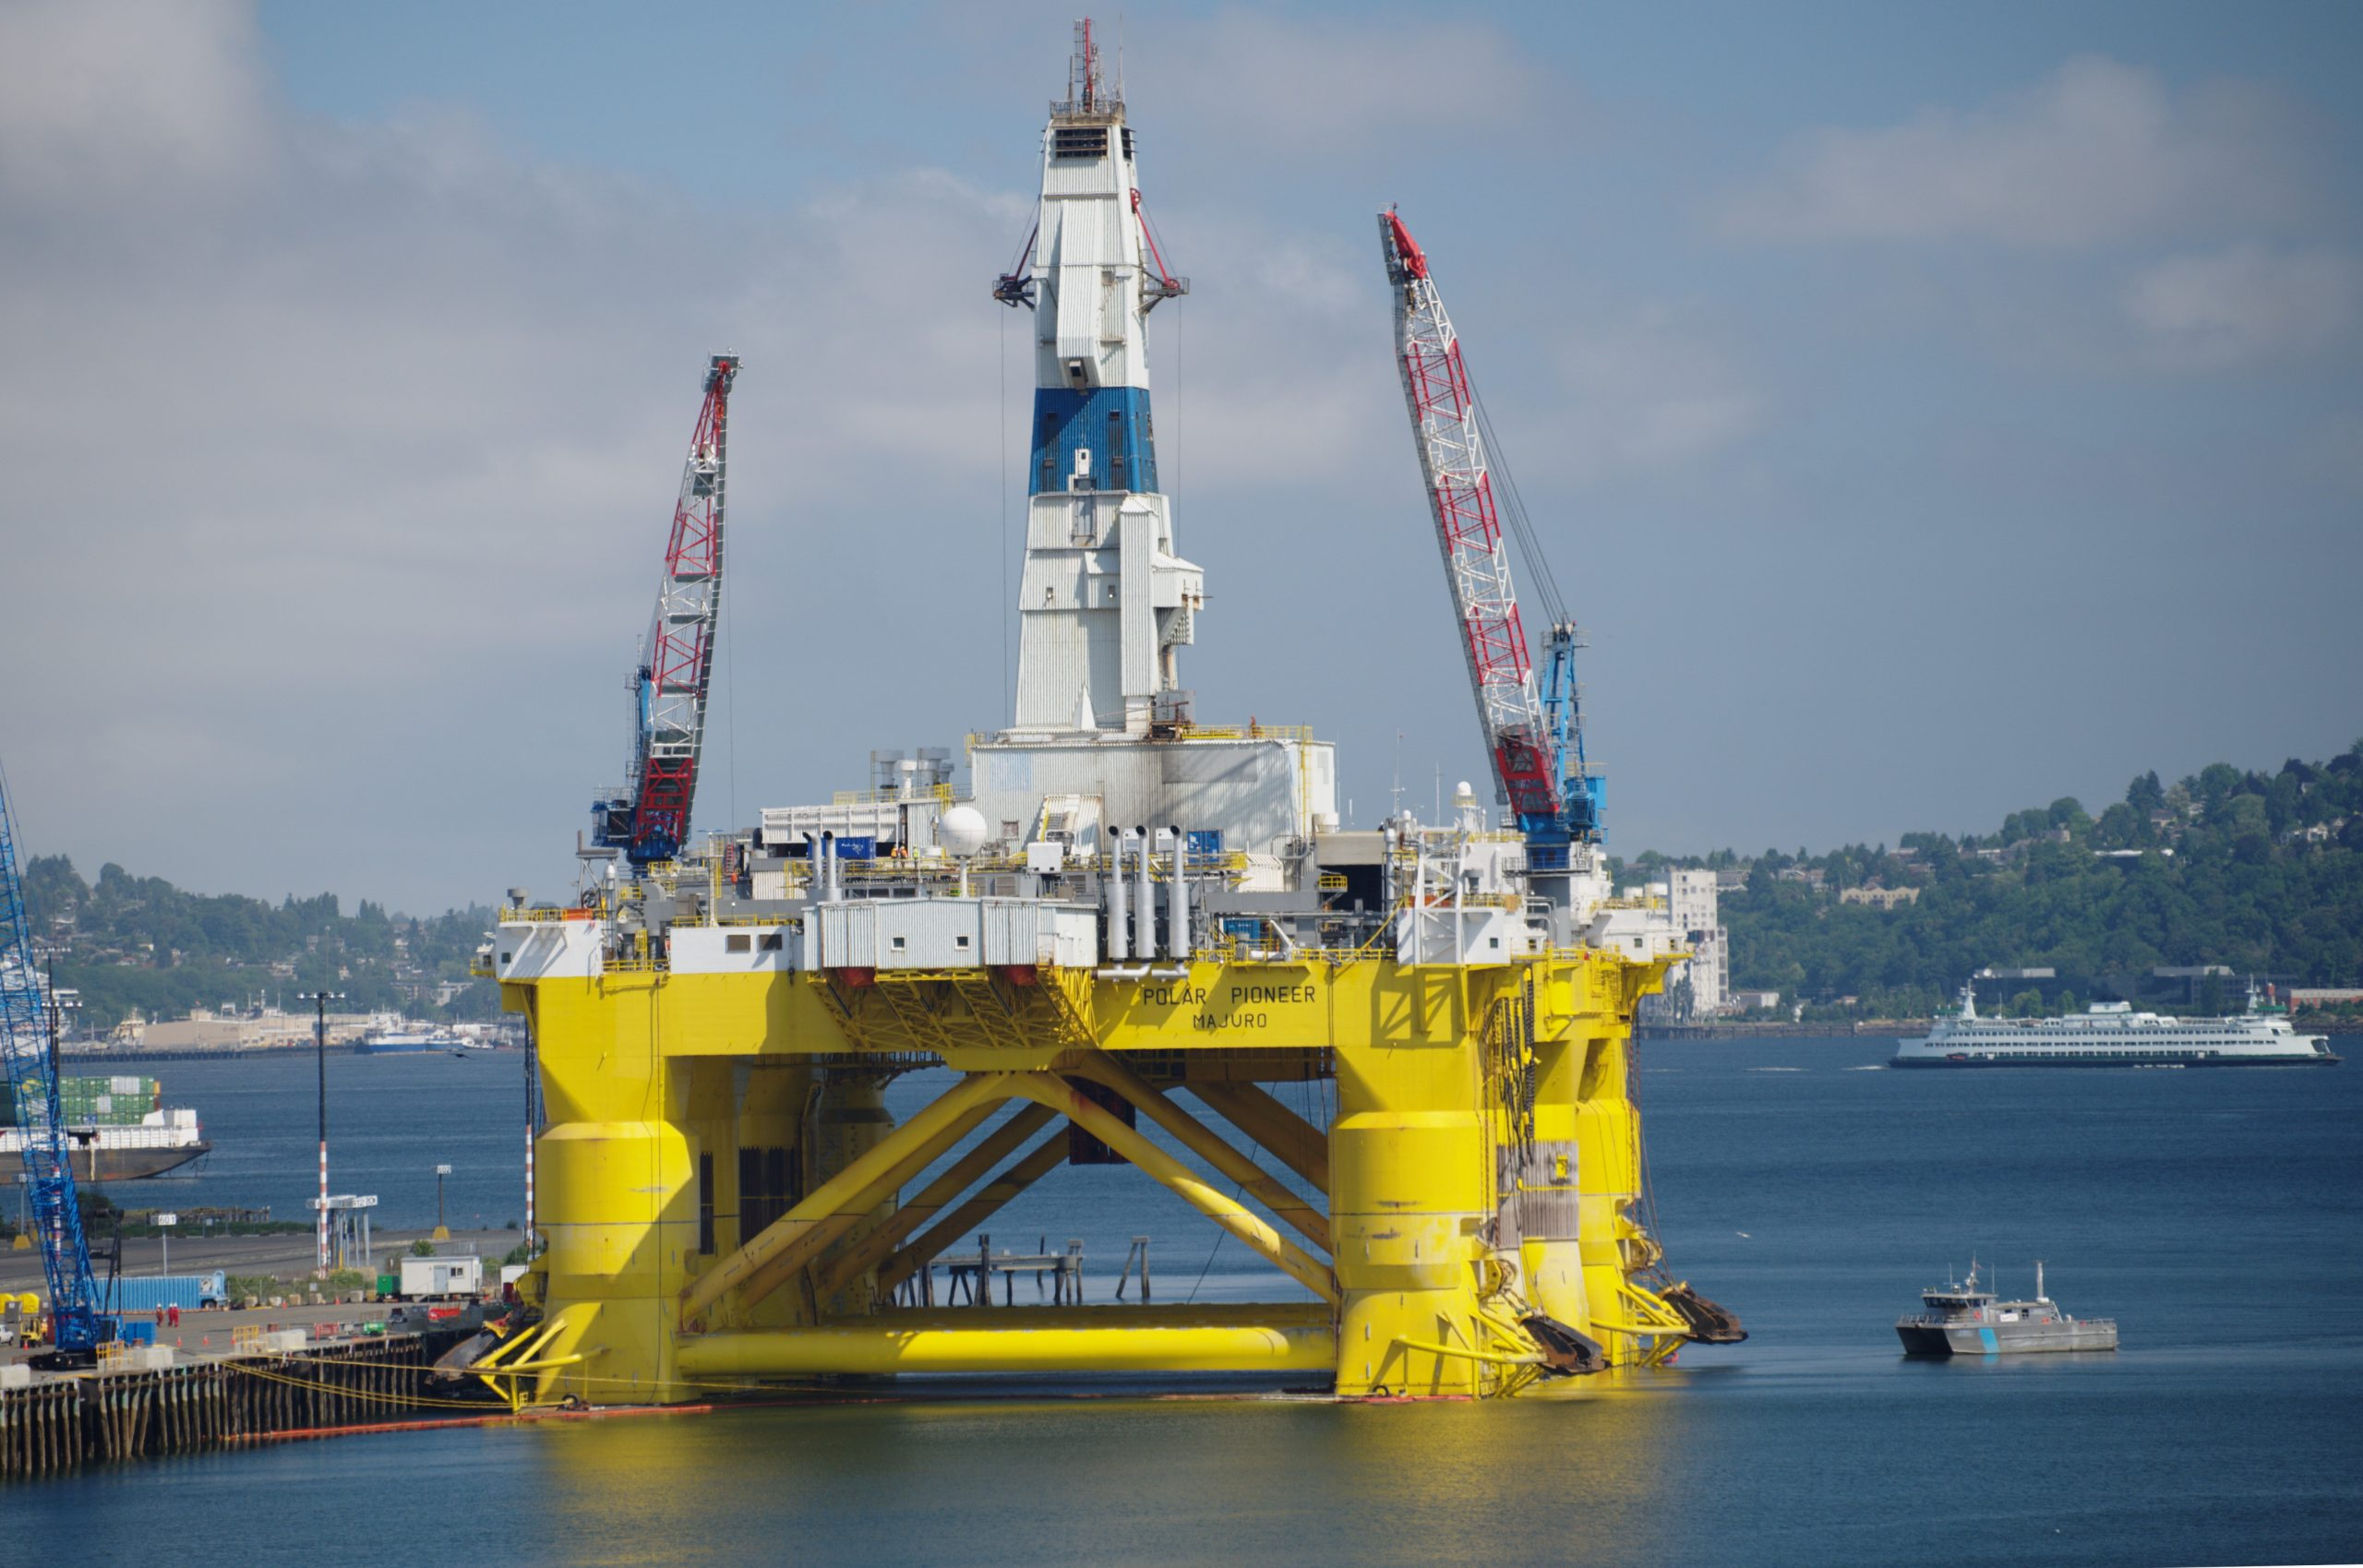 The gap between Arctic oil's rhetoric and reality